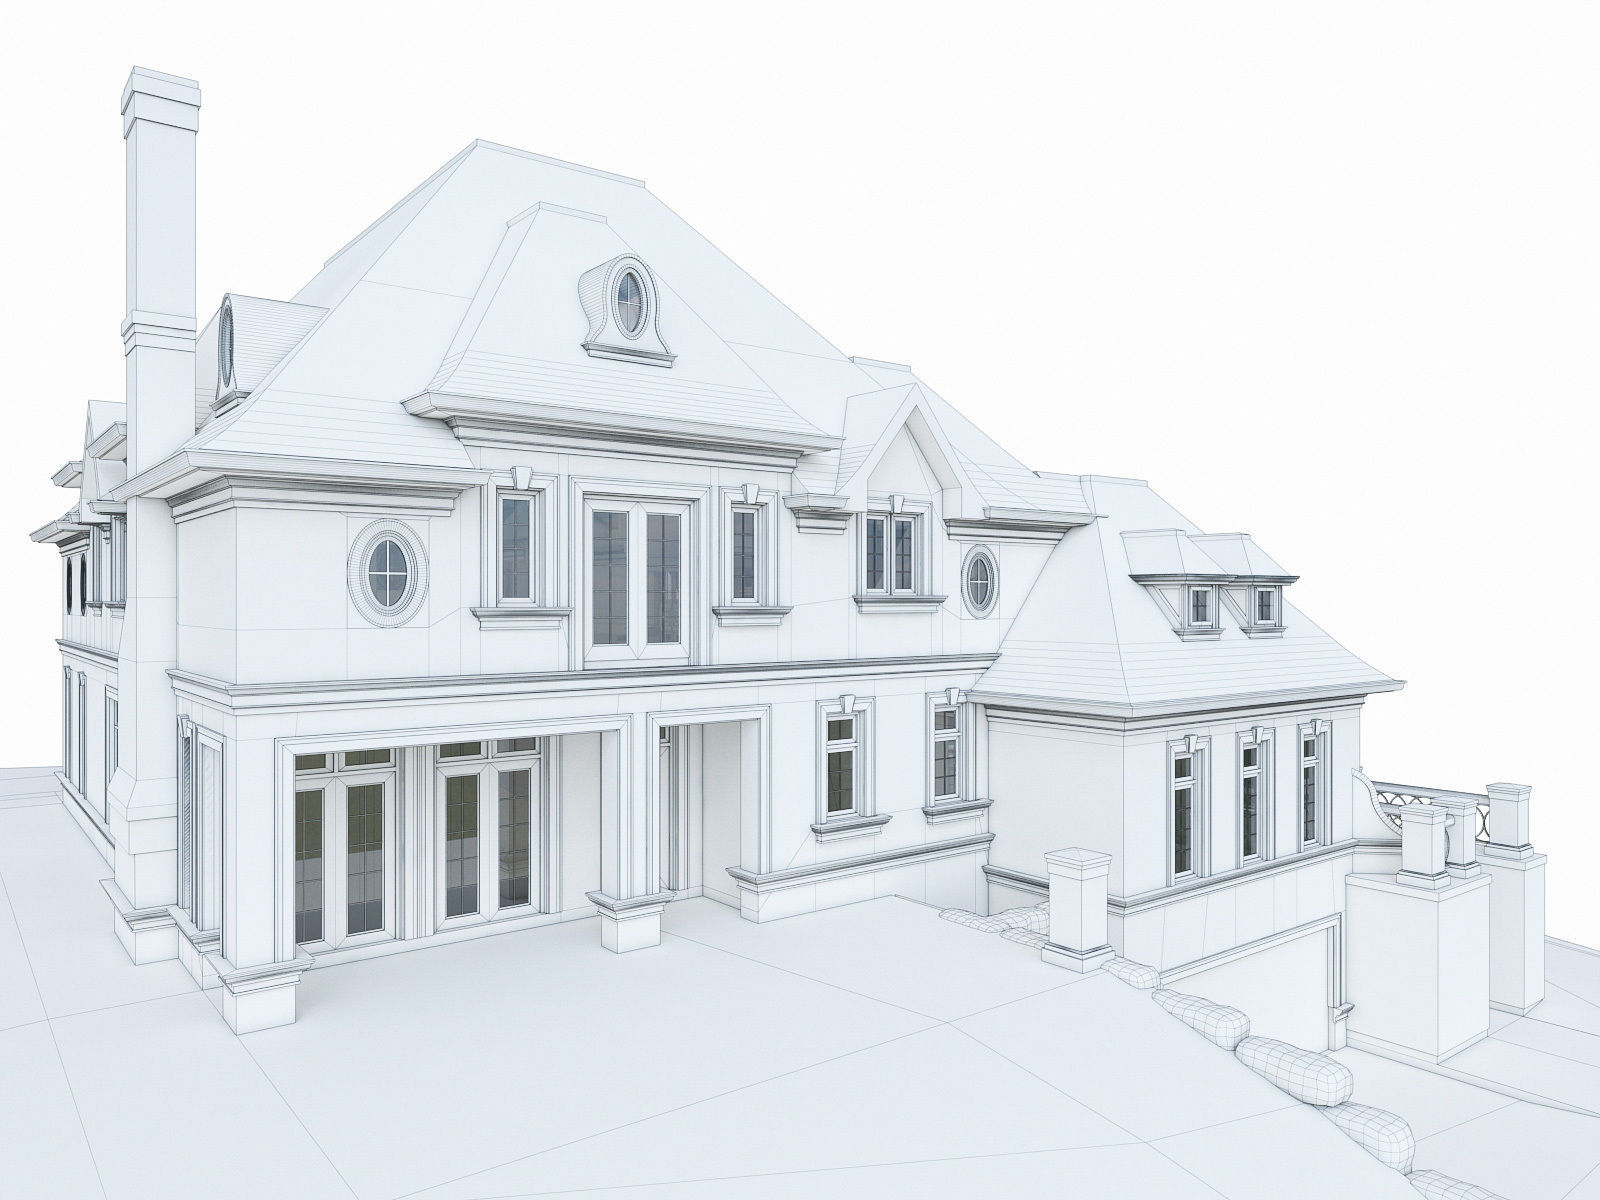 1600x1200 luxury mansion house 3d model cgtrader - 3d Drawing Of House